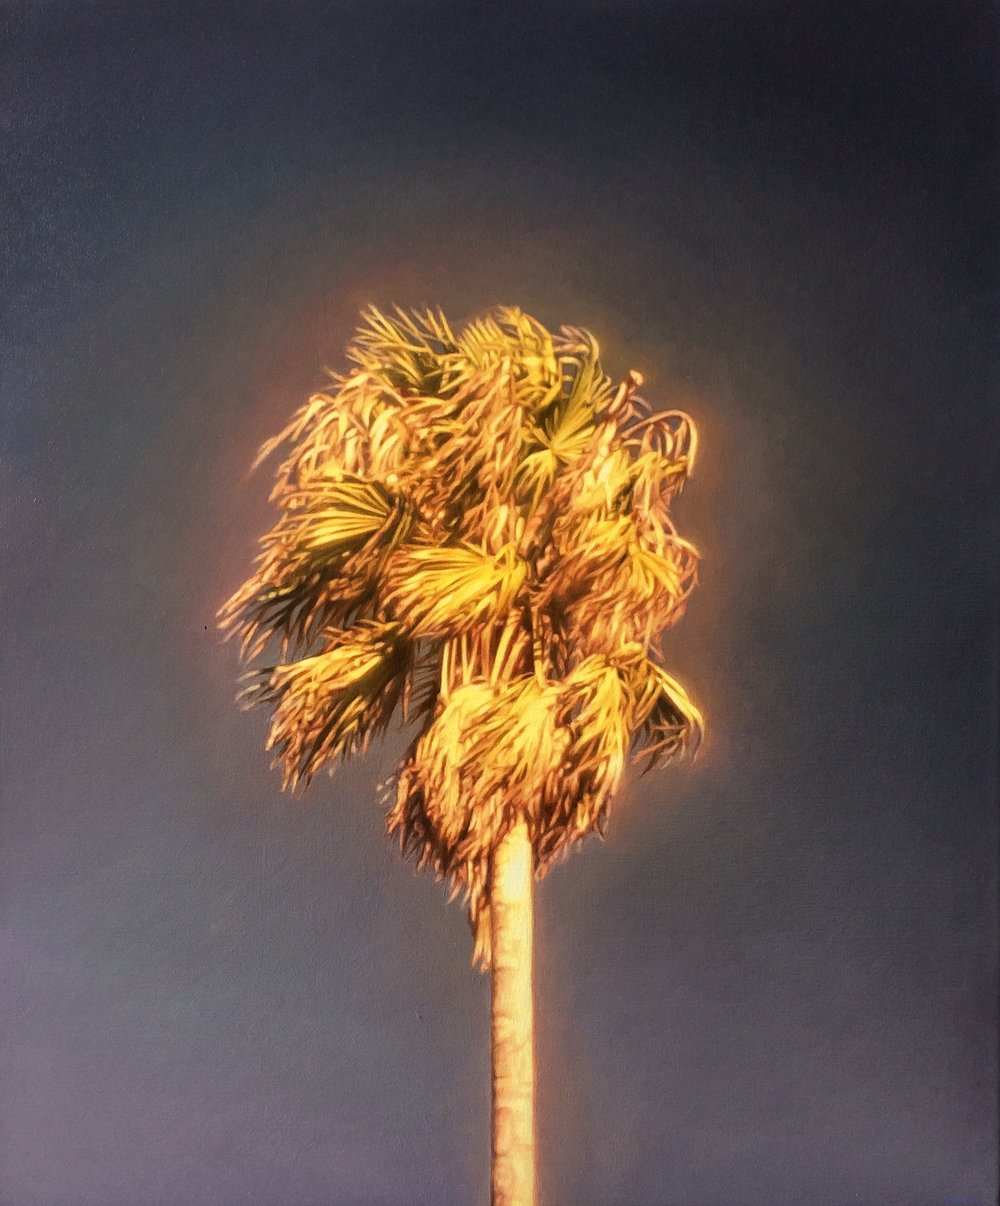 James Bonnici, Palm (Preston) oil on linen, 51 x 61 cm, available